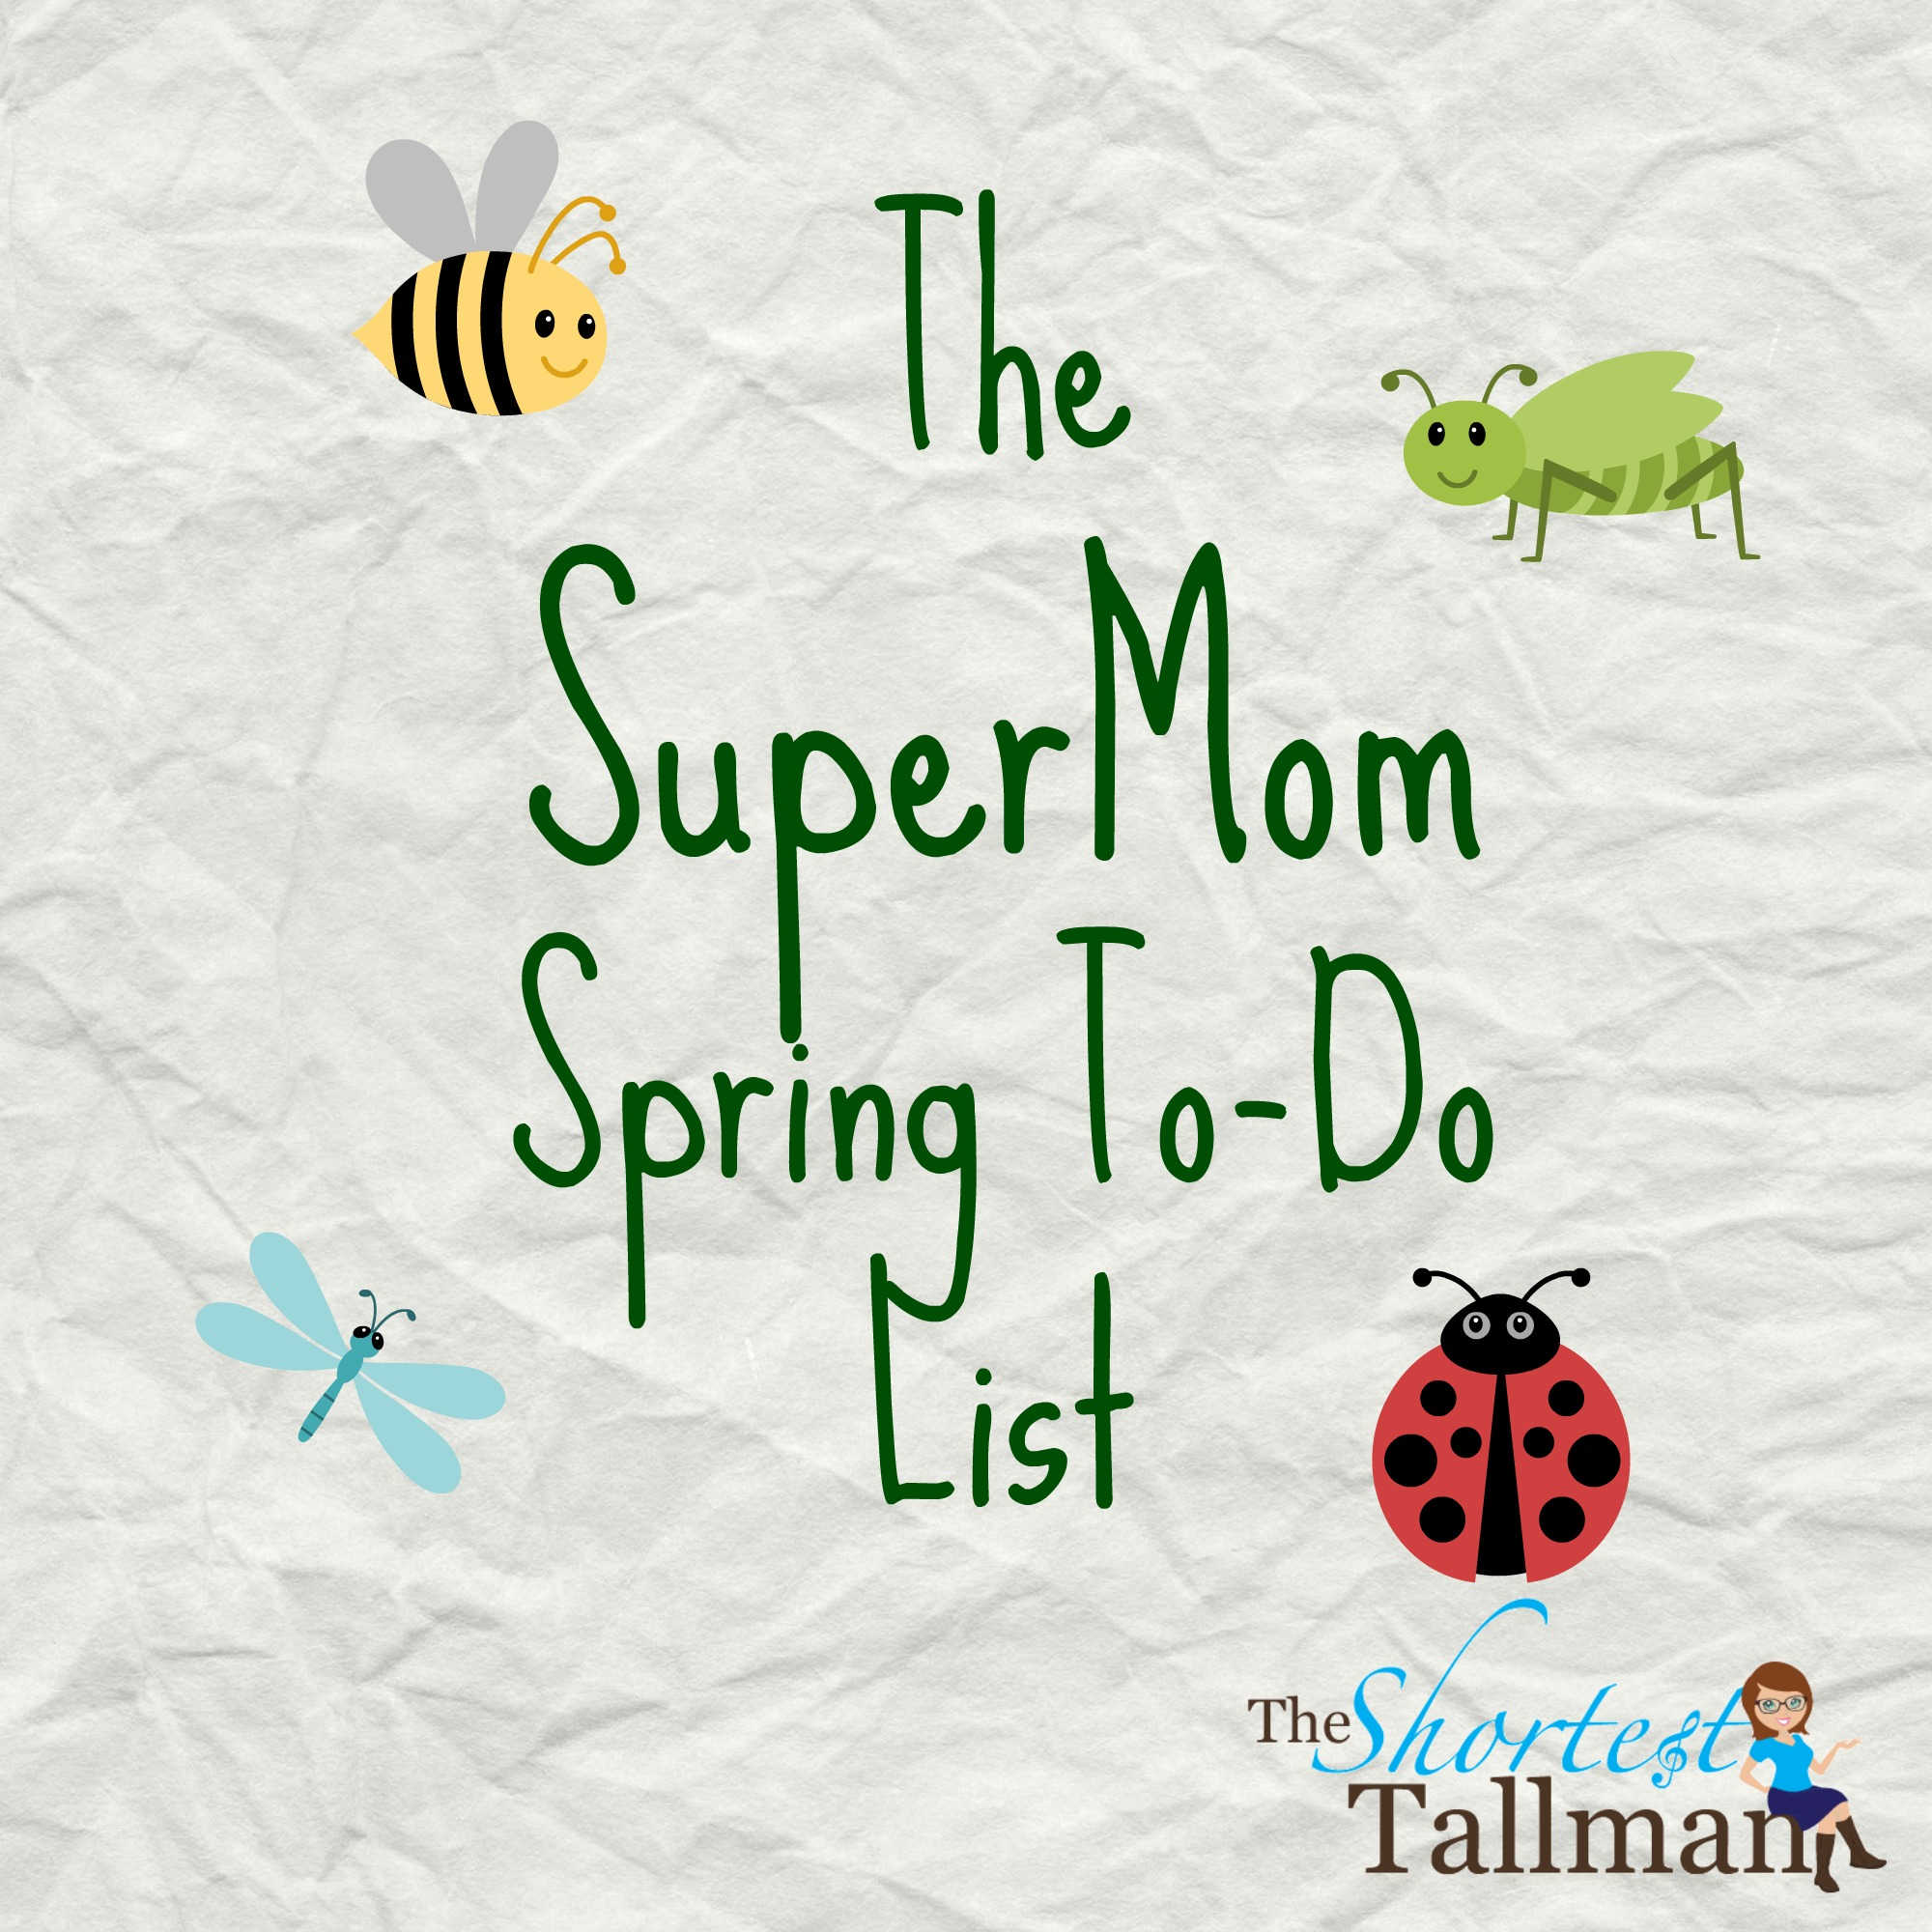 Supermom Spring To Do List! www.theshortesttallman.com